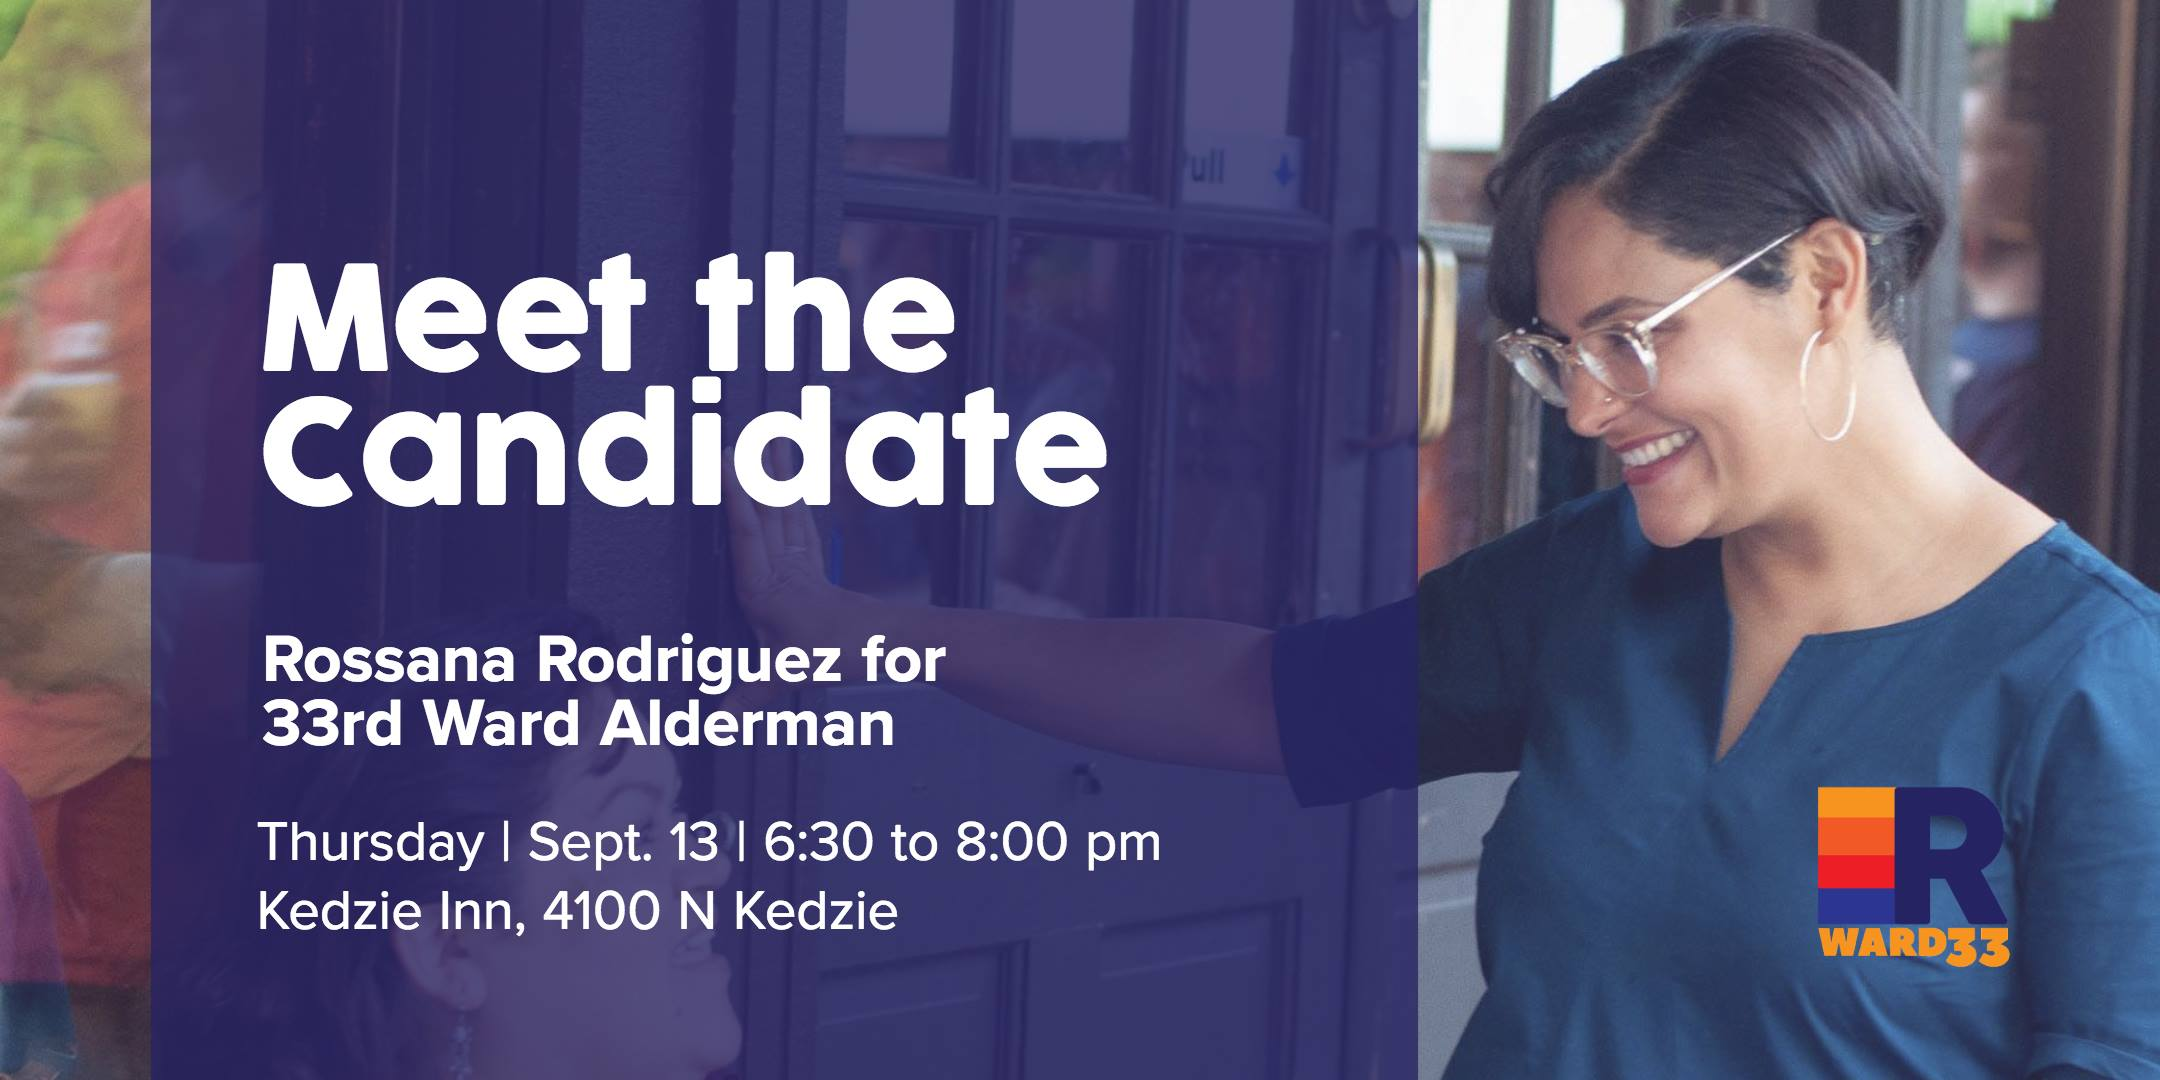 Meet the Candidate with Rossana Rodriguez for 33rd Ward Alderman